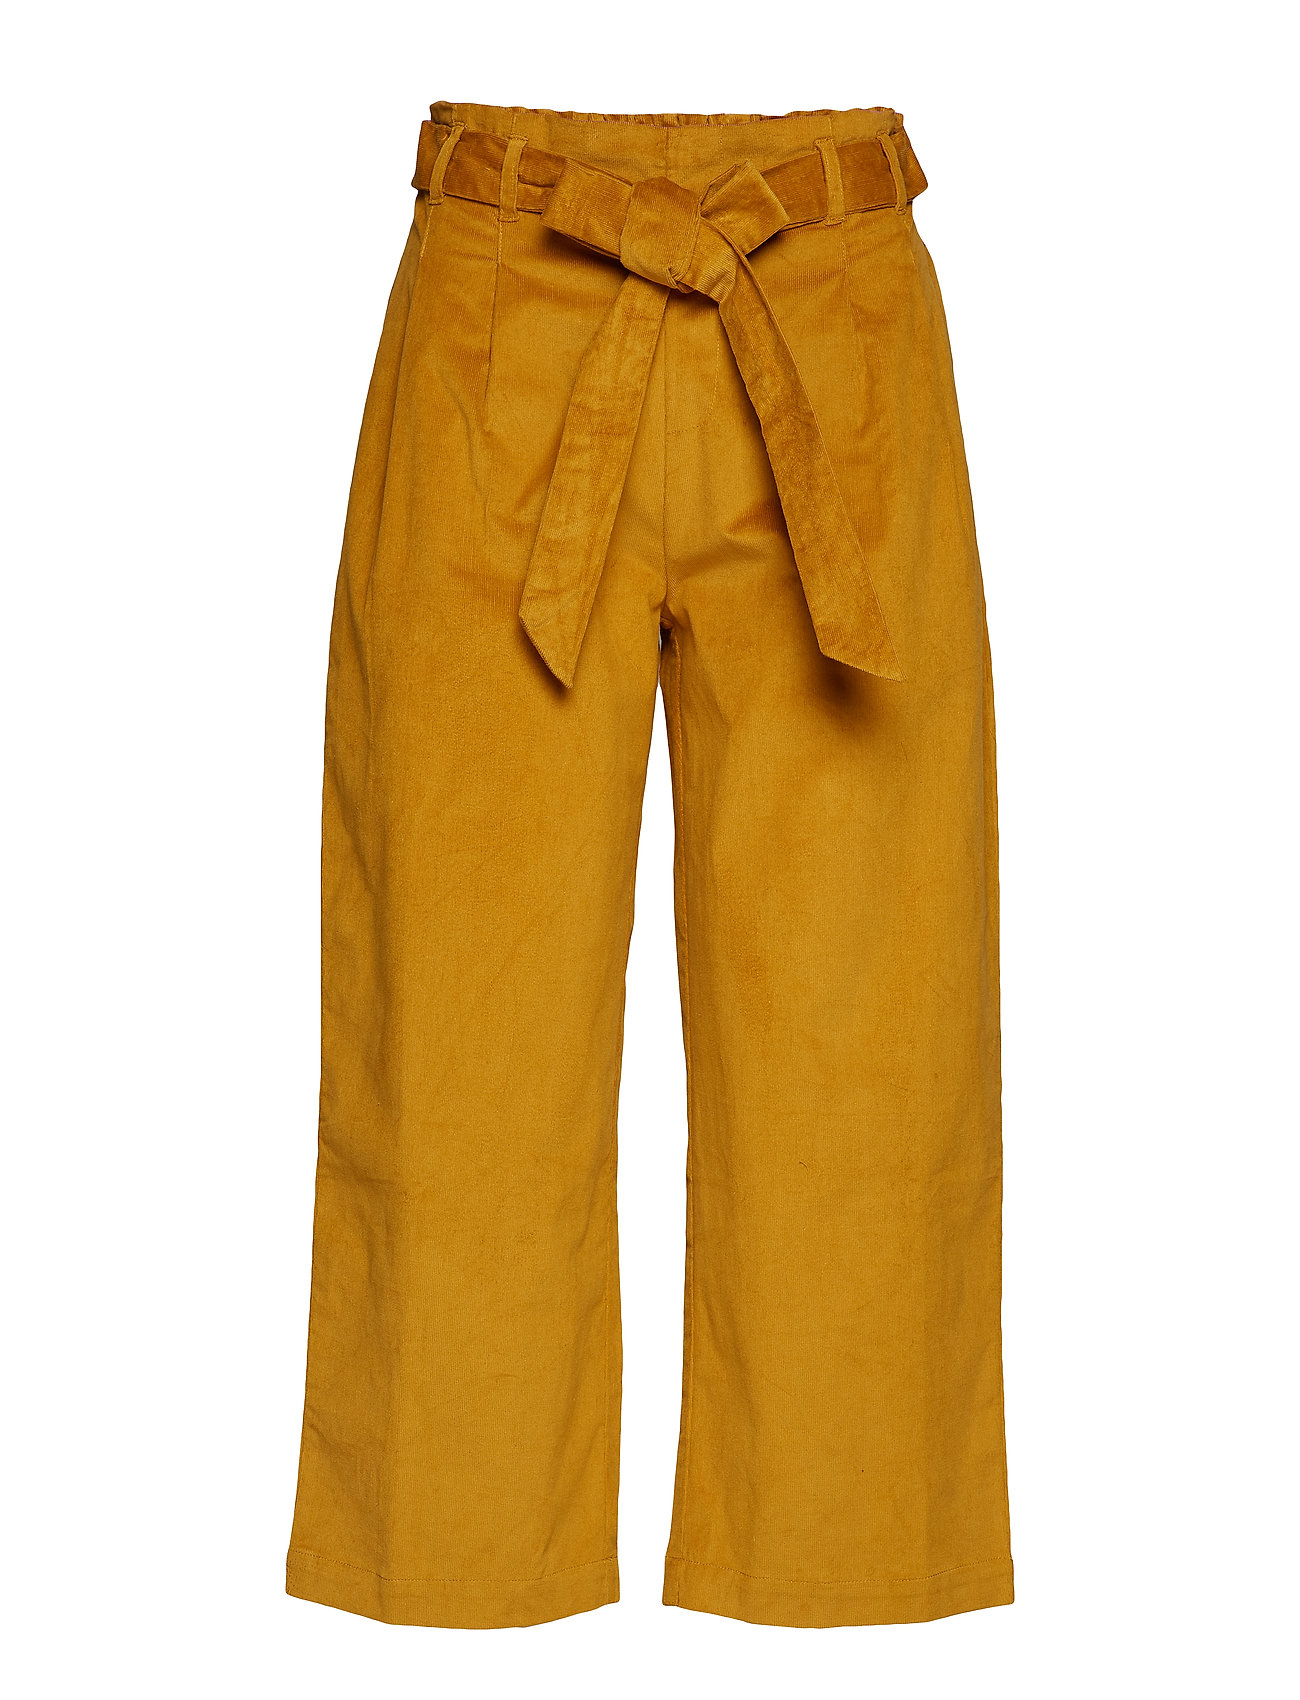 Lollys Laundry Aila Pants - MUSTARD